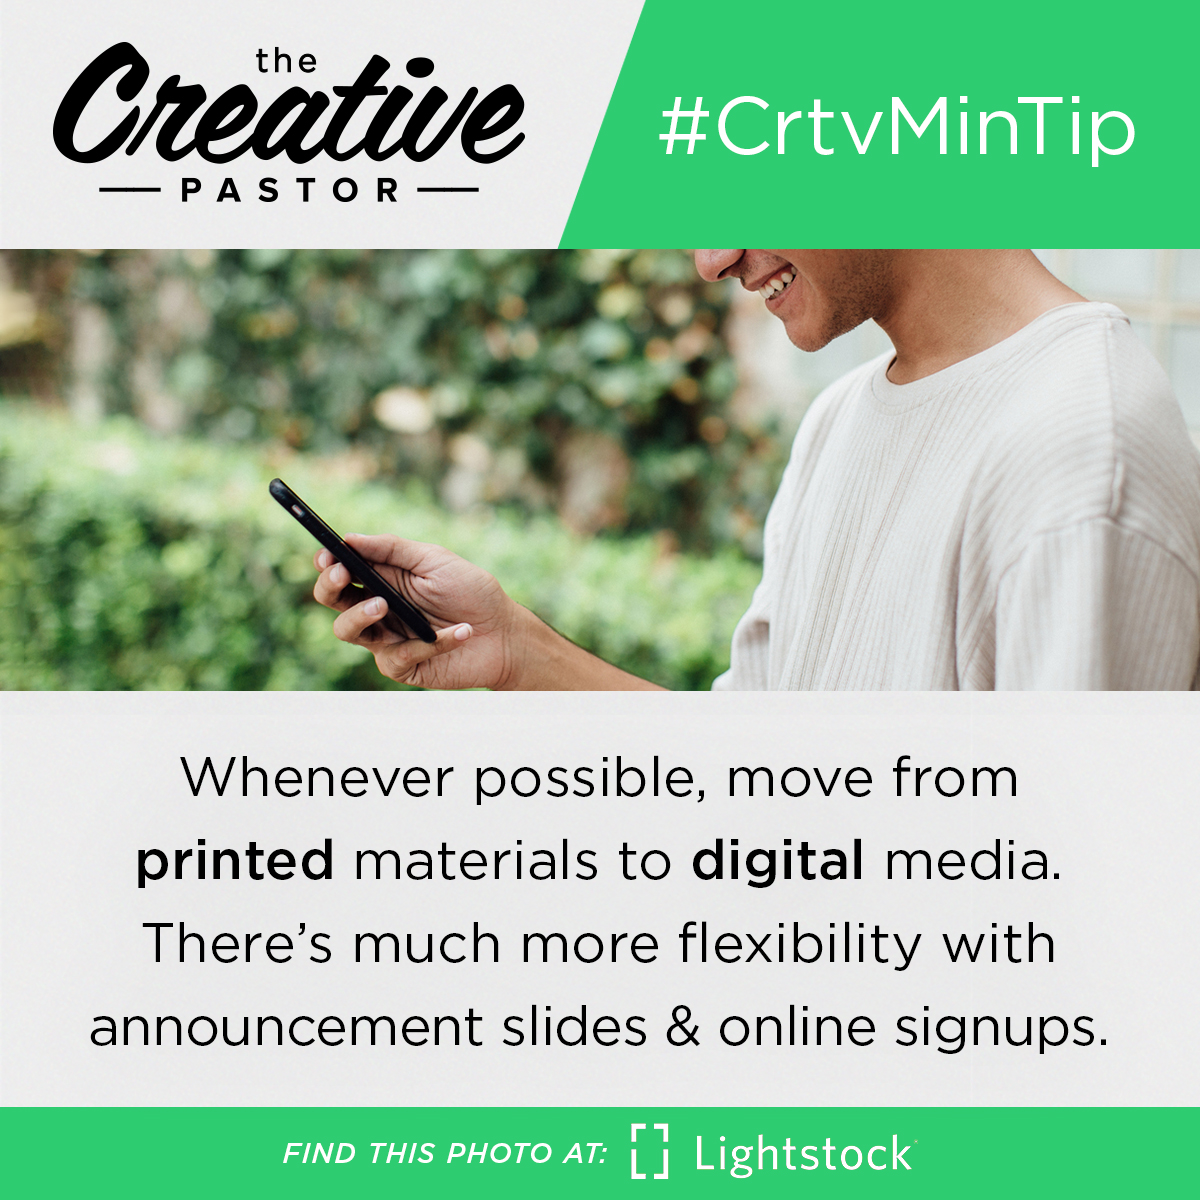 #CrtvMinTip: Whenever possible, move from printed materials to digital media. There's much more flexibility with announcement slides and online signups.